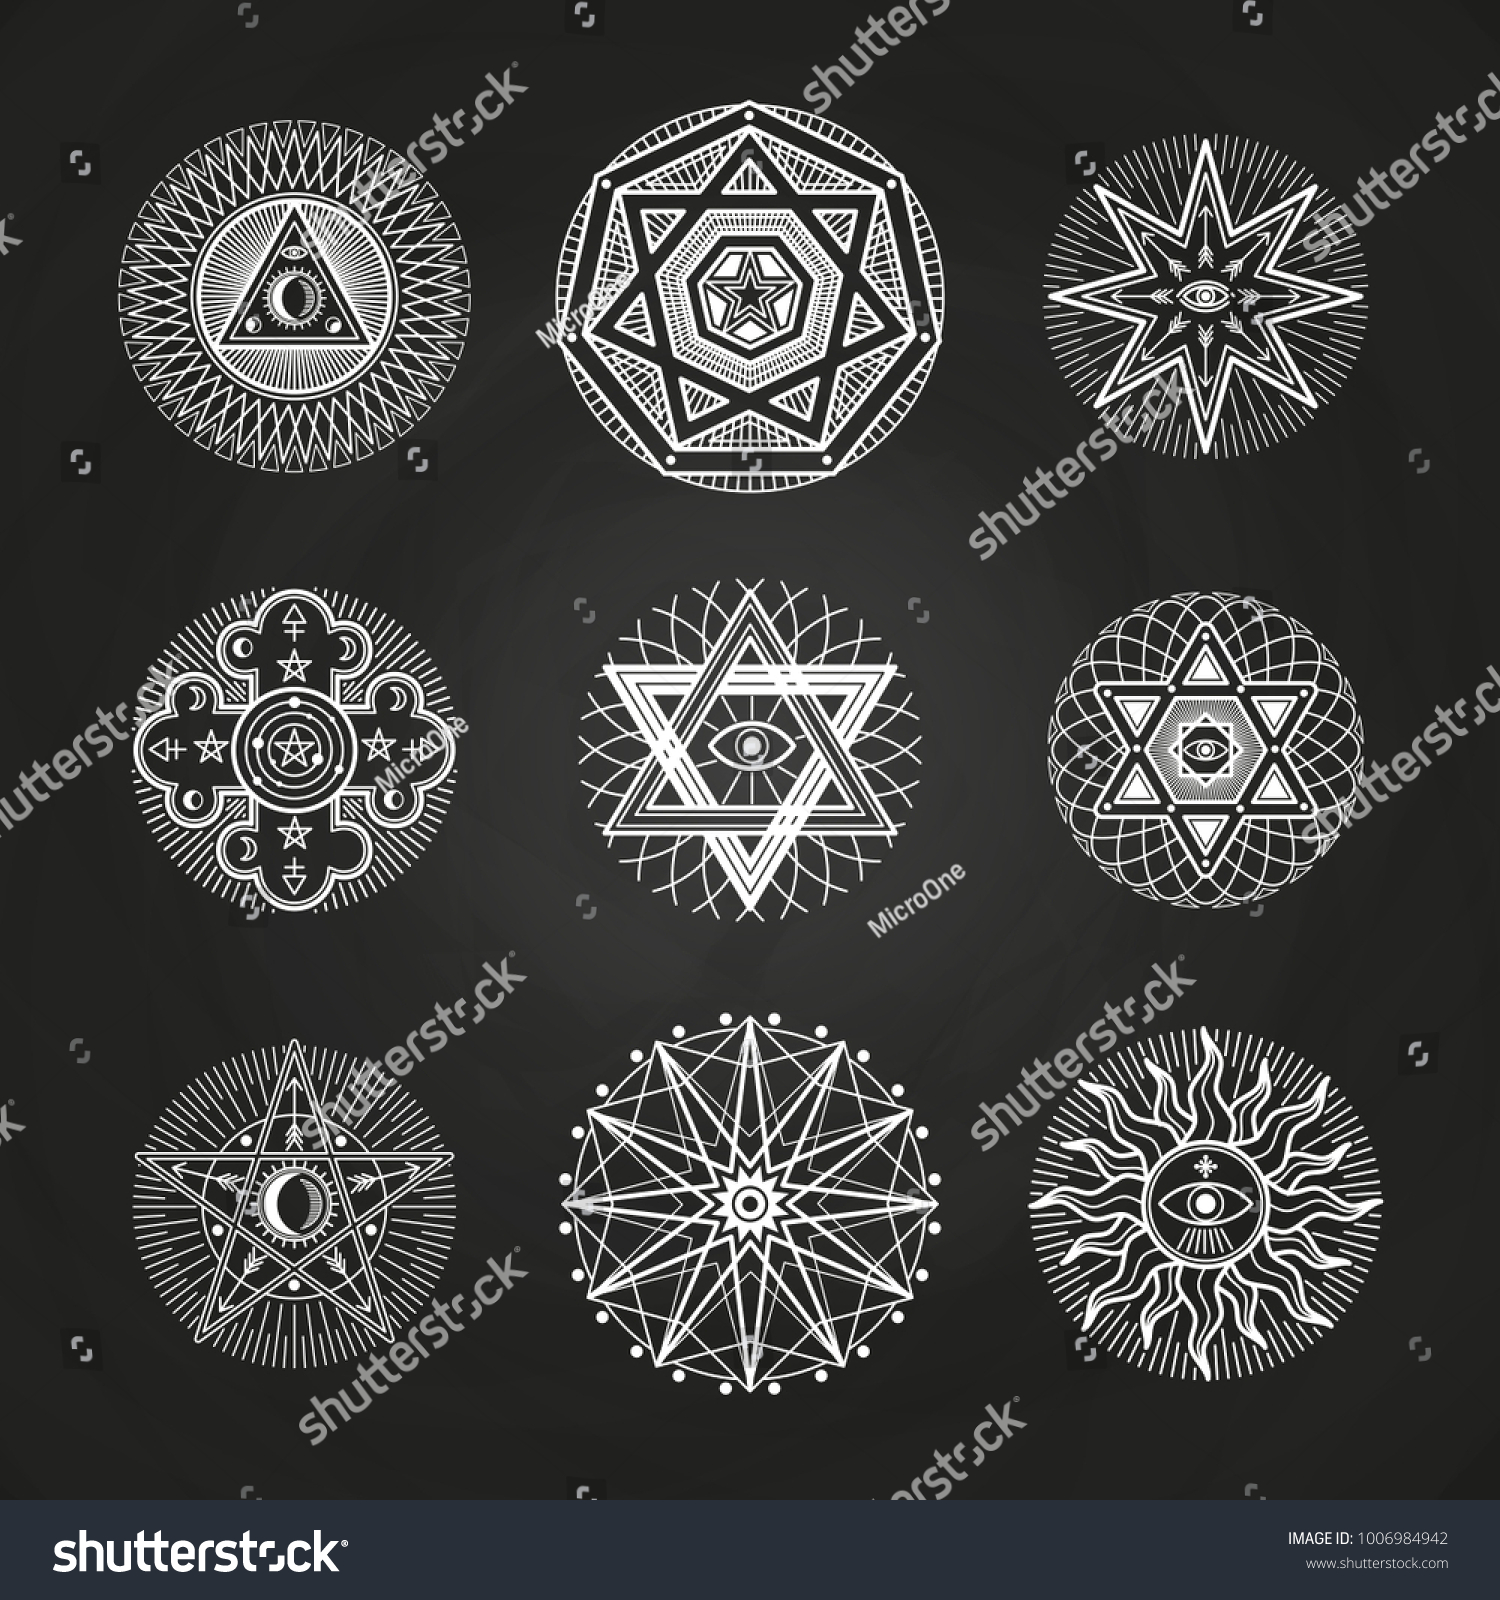 White Mystery Occult Alchemy Mystical Esoteric Stock Vector Royalty